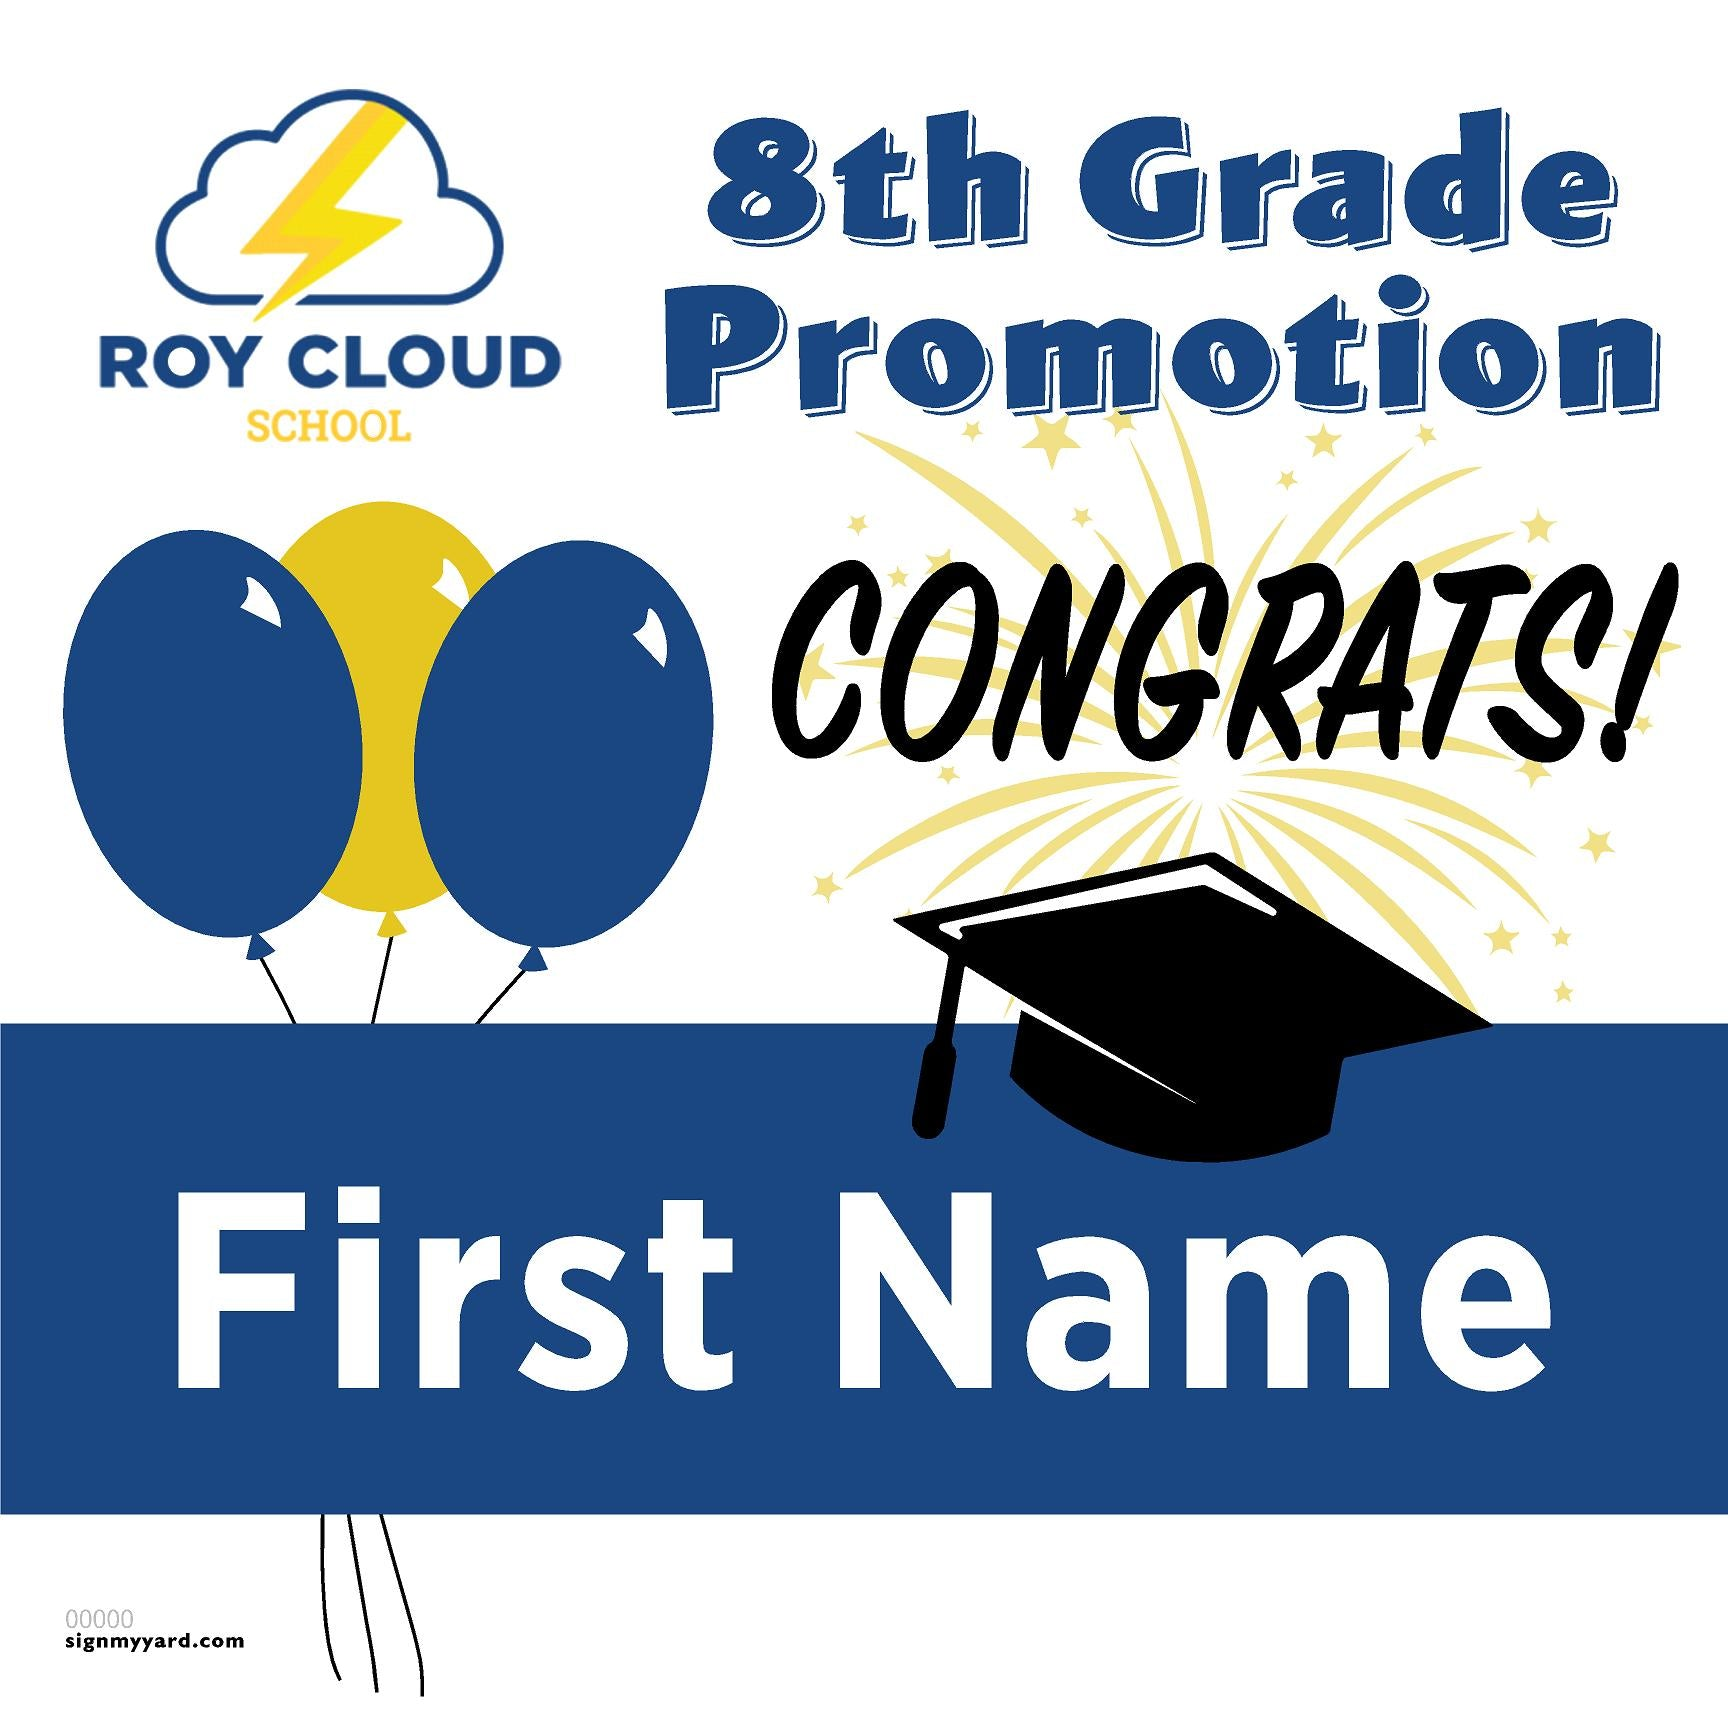 Roy Cloud Elementary School 8th Grade Promotion 24x24 #shineon2027 Yard Sign (Option A)